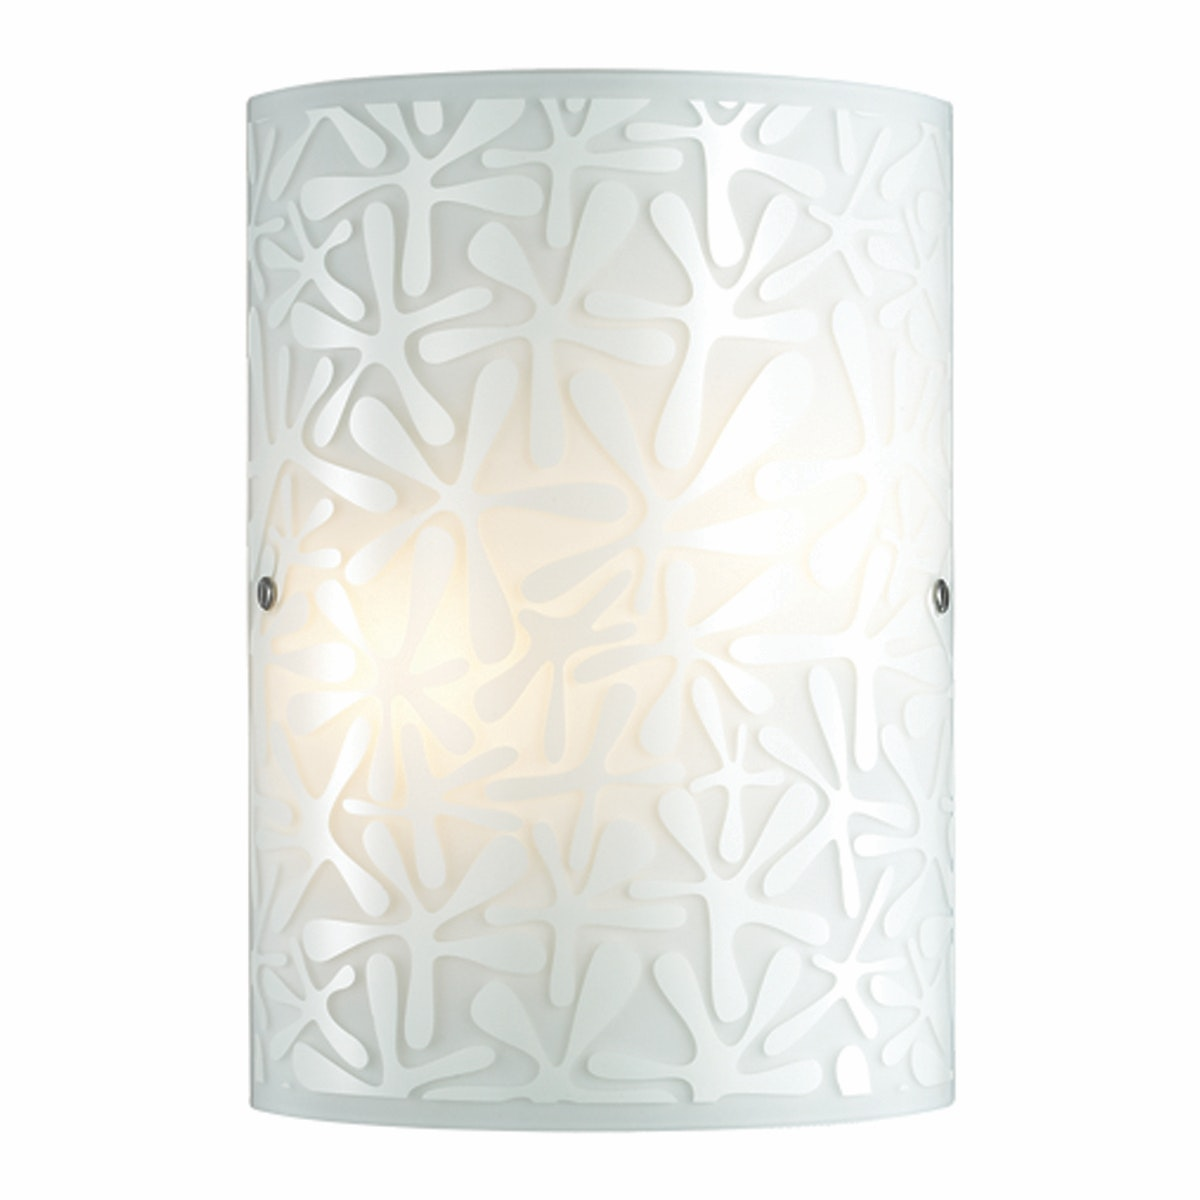 3+Projects Lampu Dinding / Wall Lamp White Glass 3+DL-WL1206-DA-AH